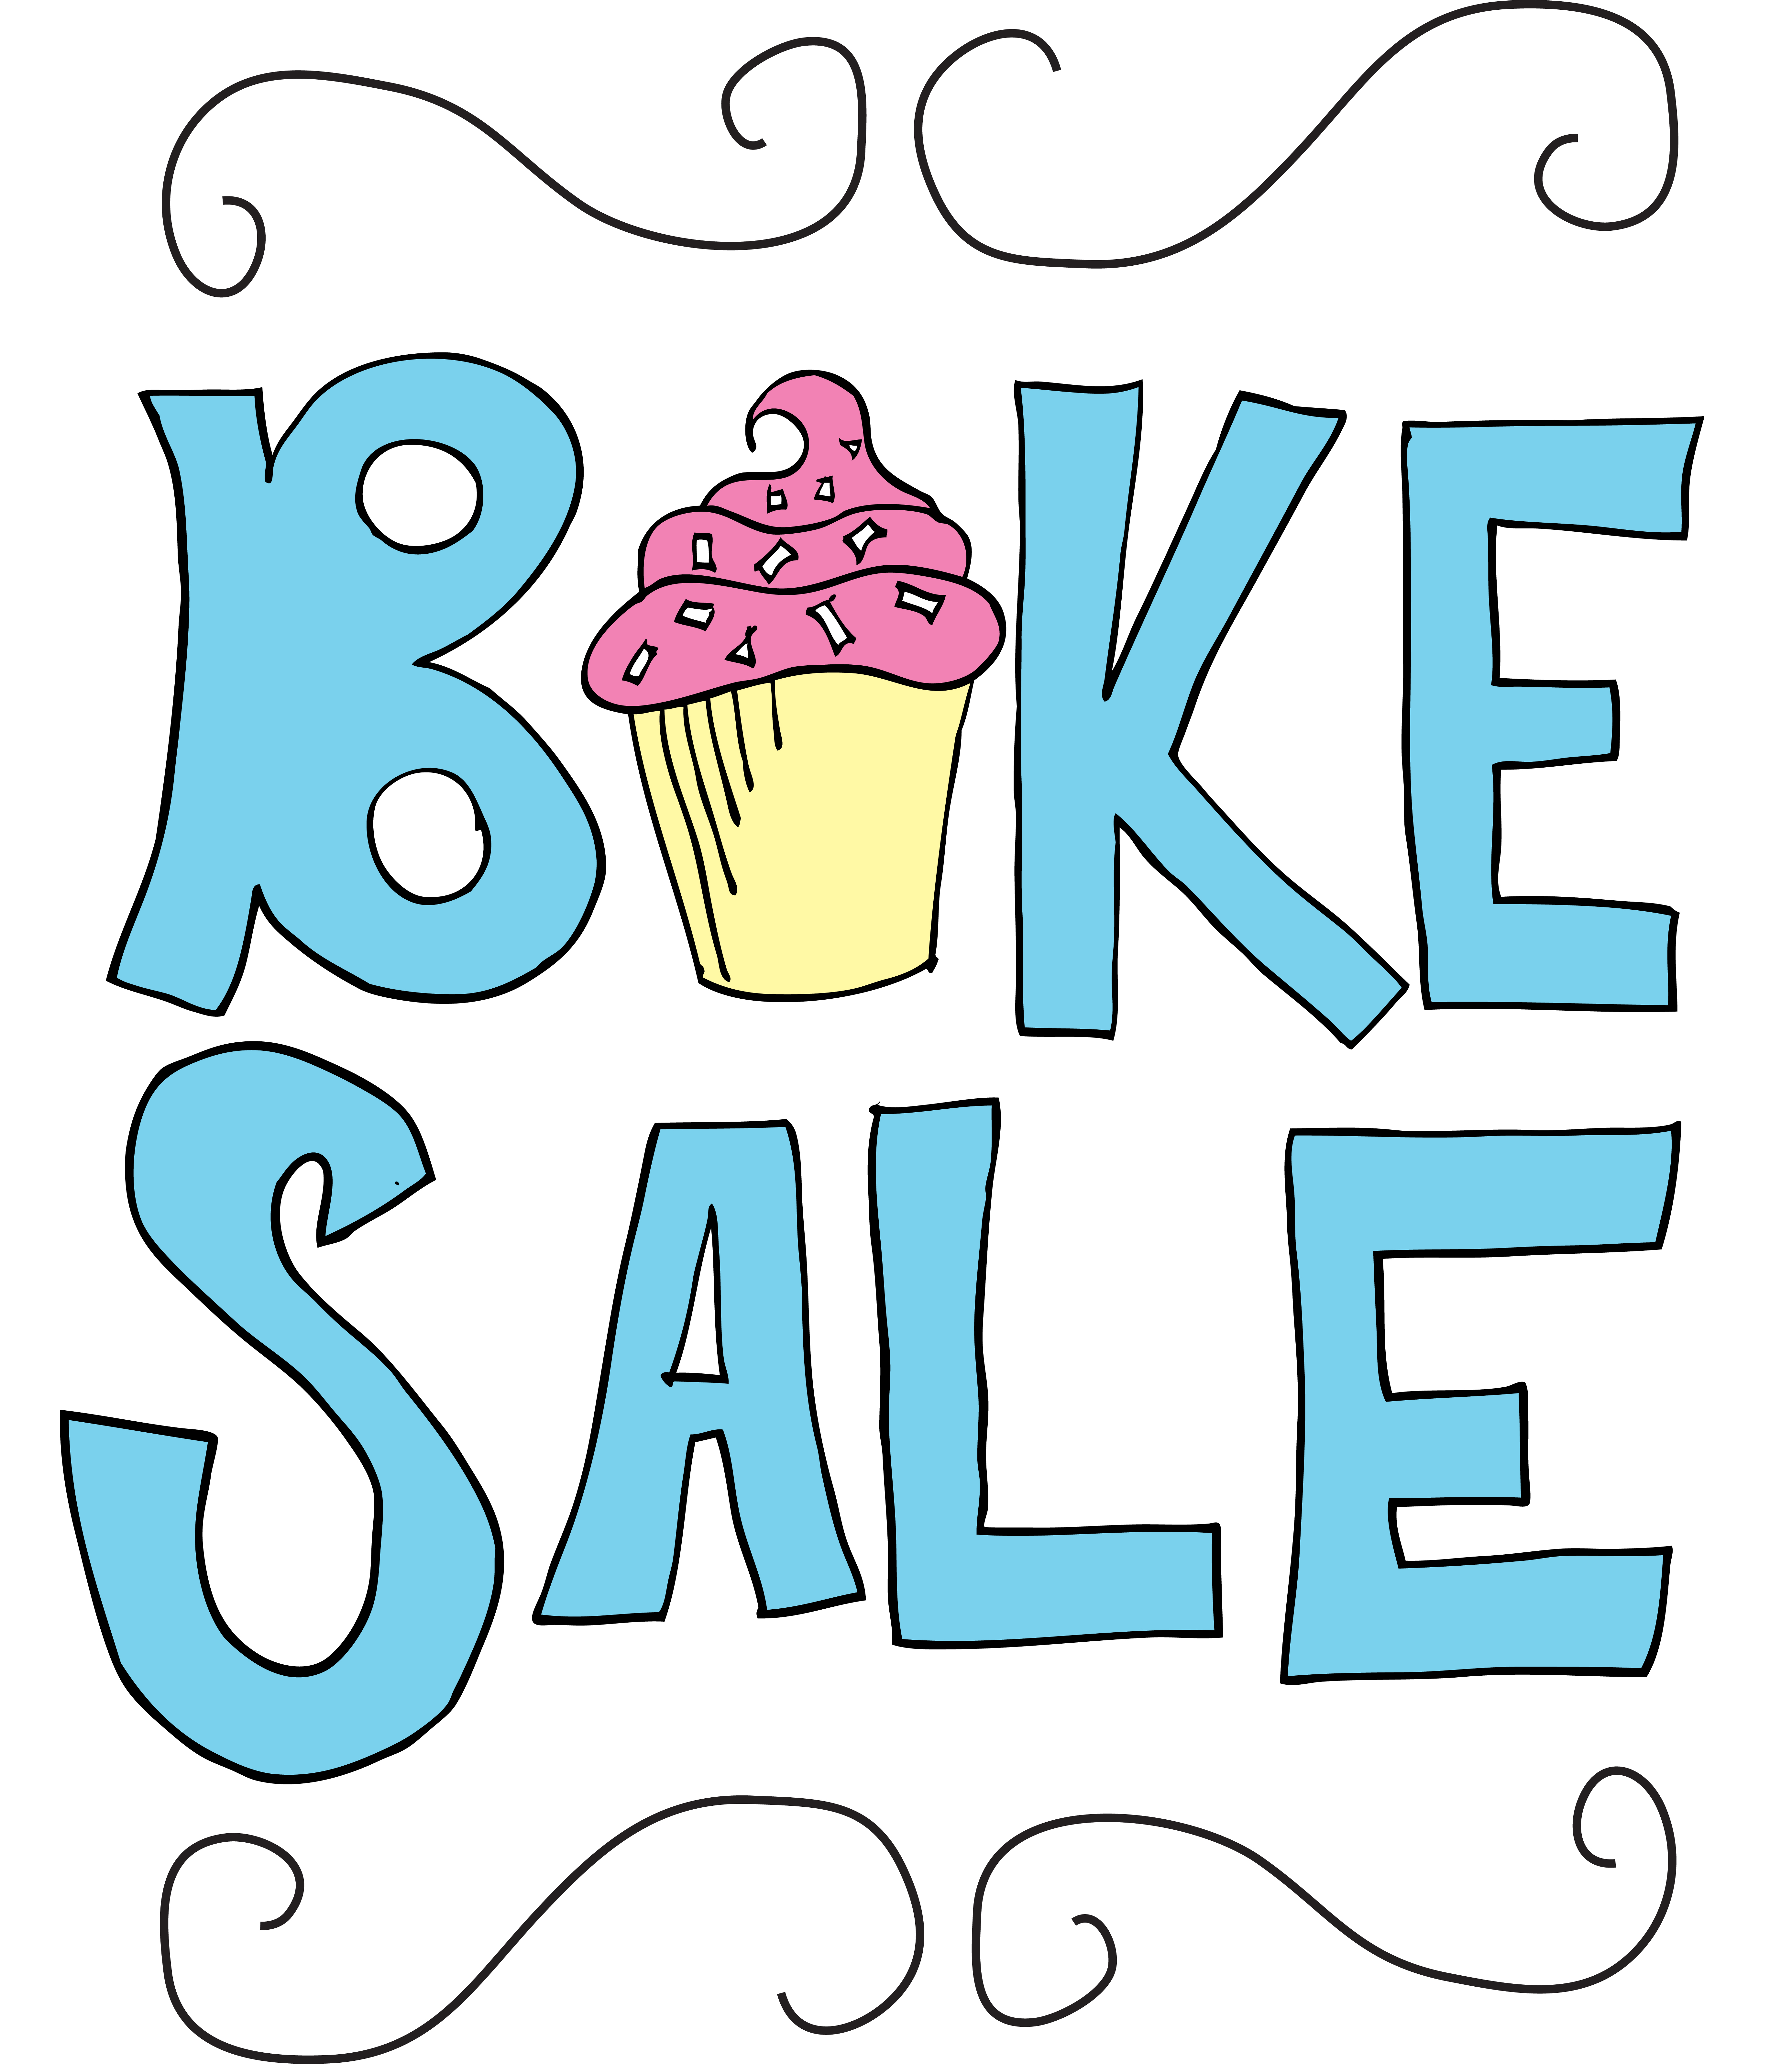 11 Bake Sale Icons Images